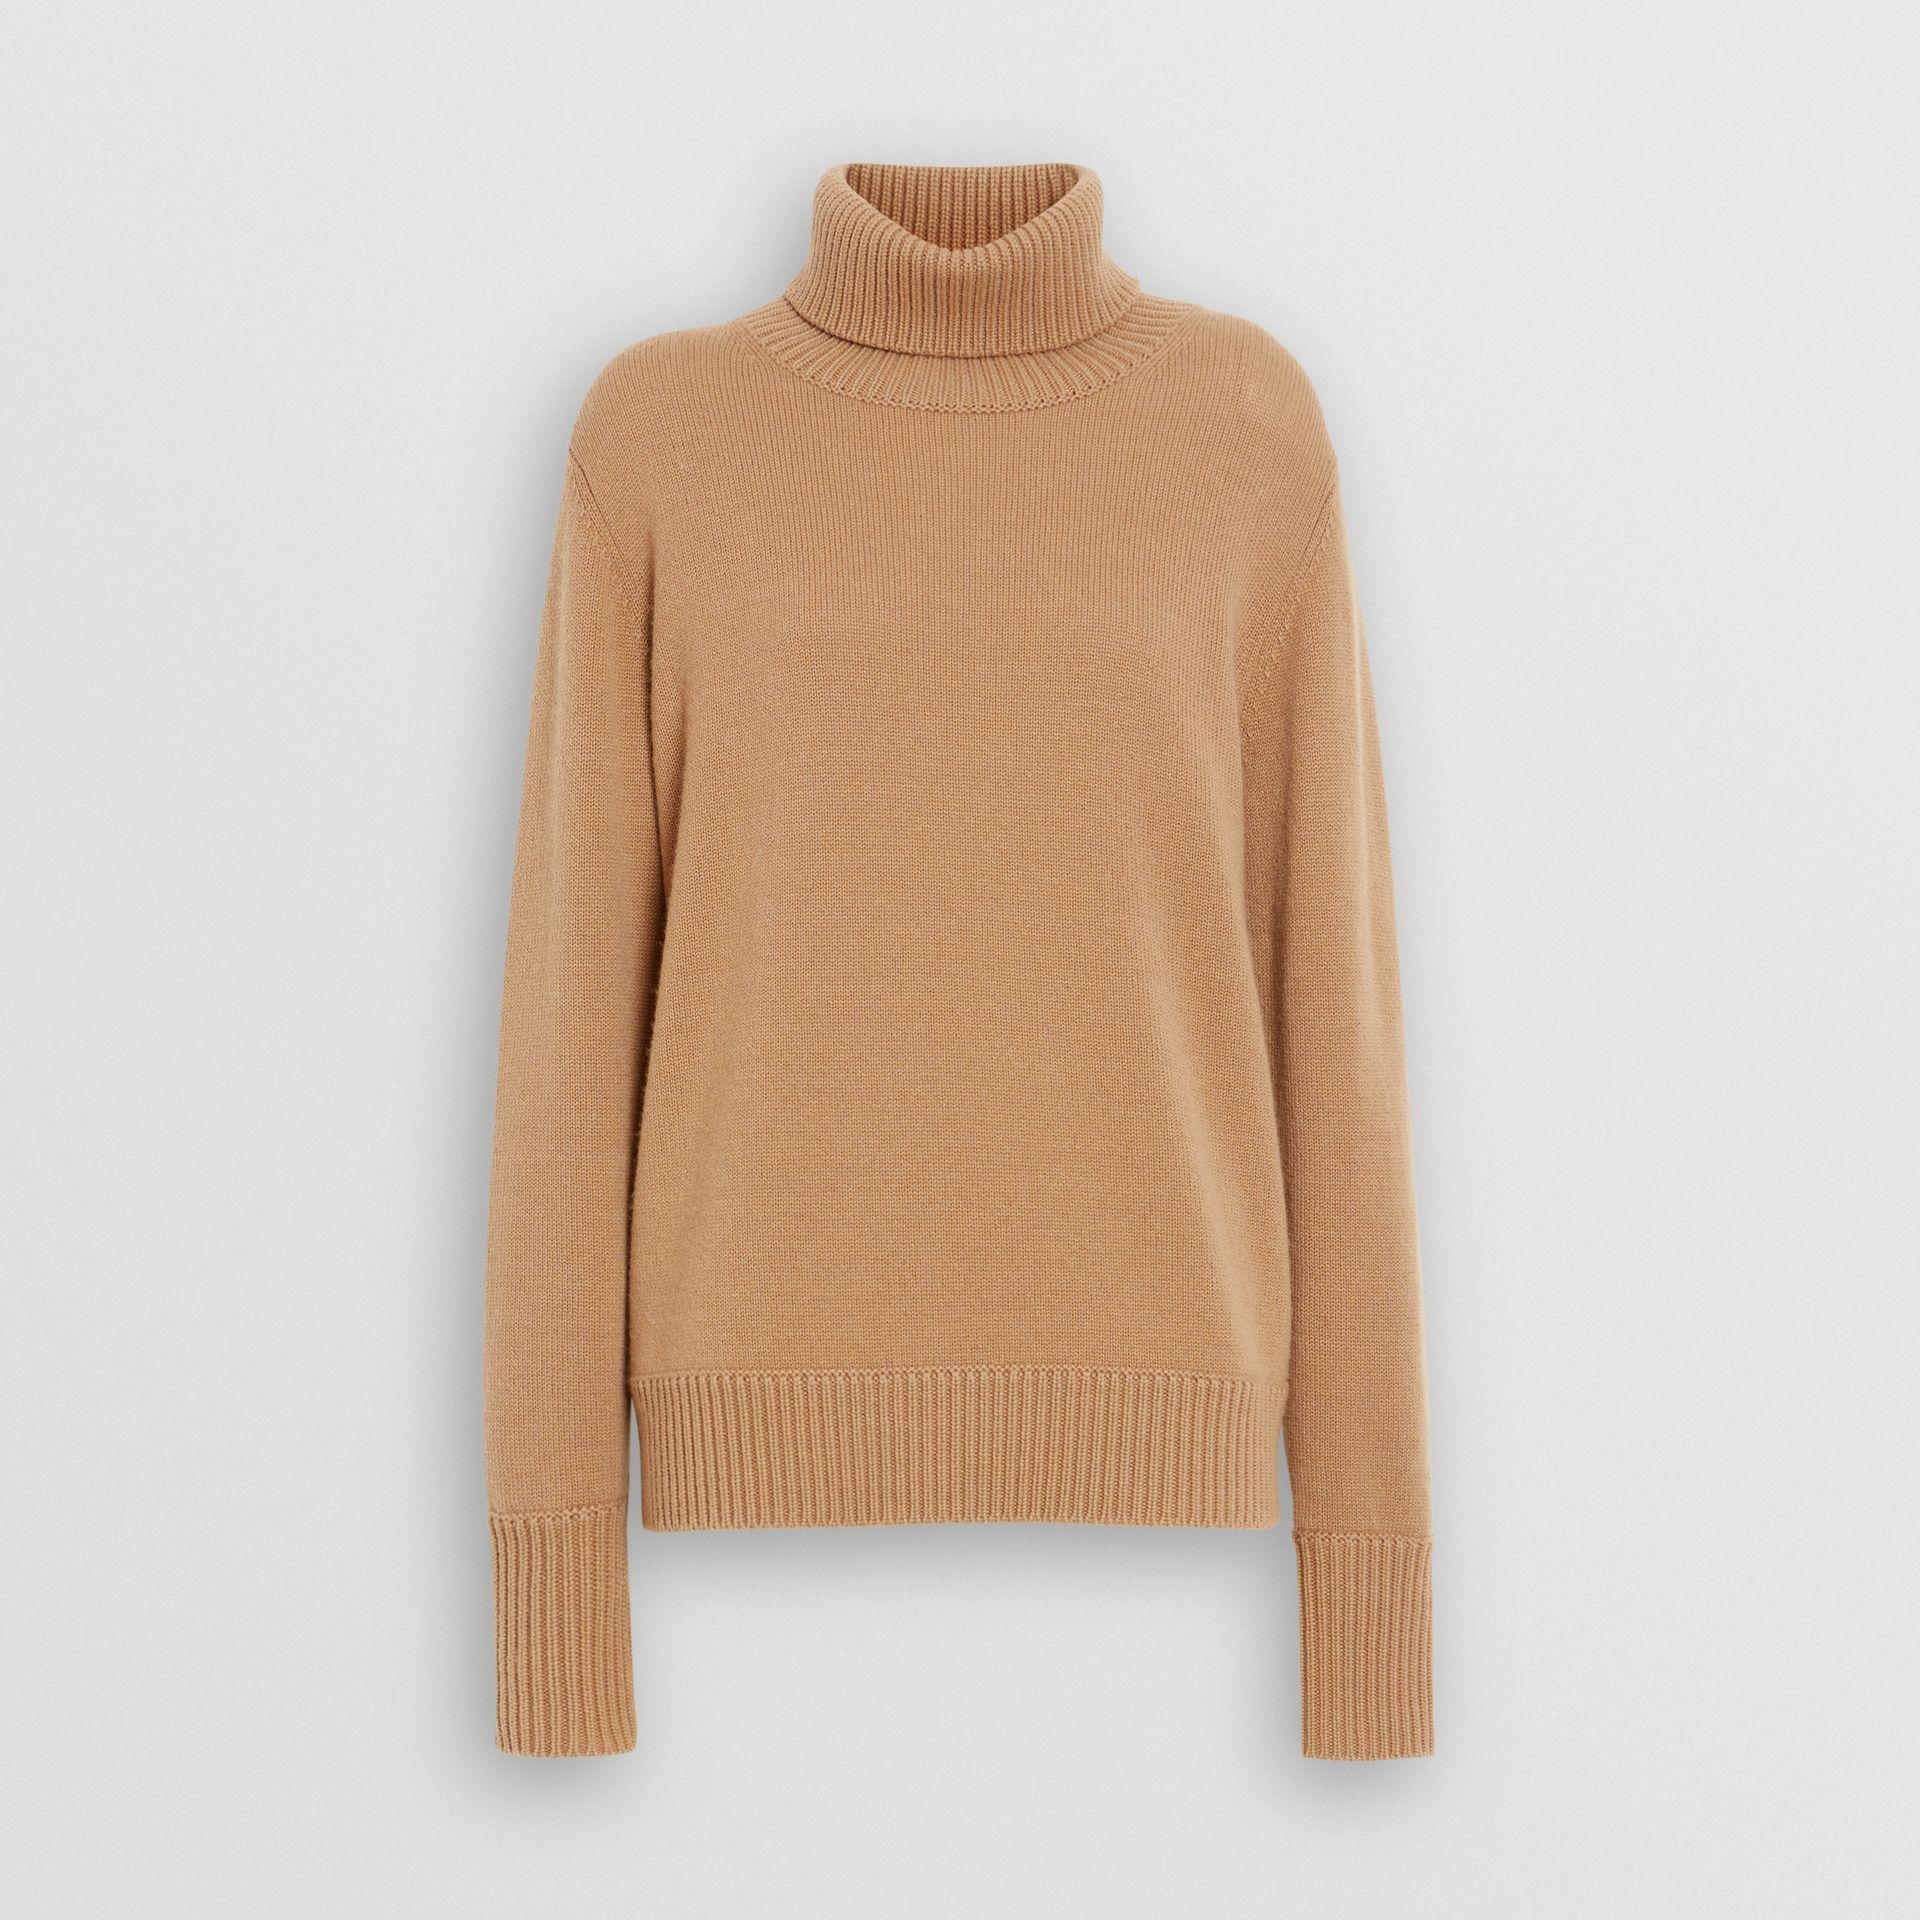 Embroidered Crest Cashmere Roll-neck Sweater in Camel - Women | Burberry United Kingdom - gallery image 3